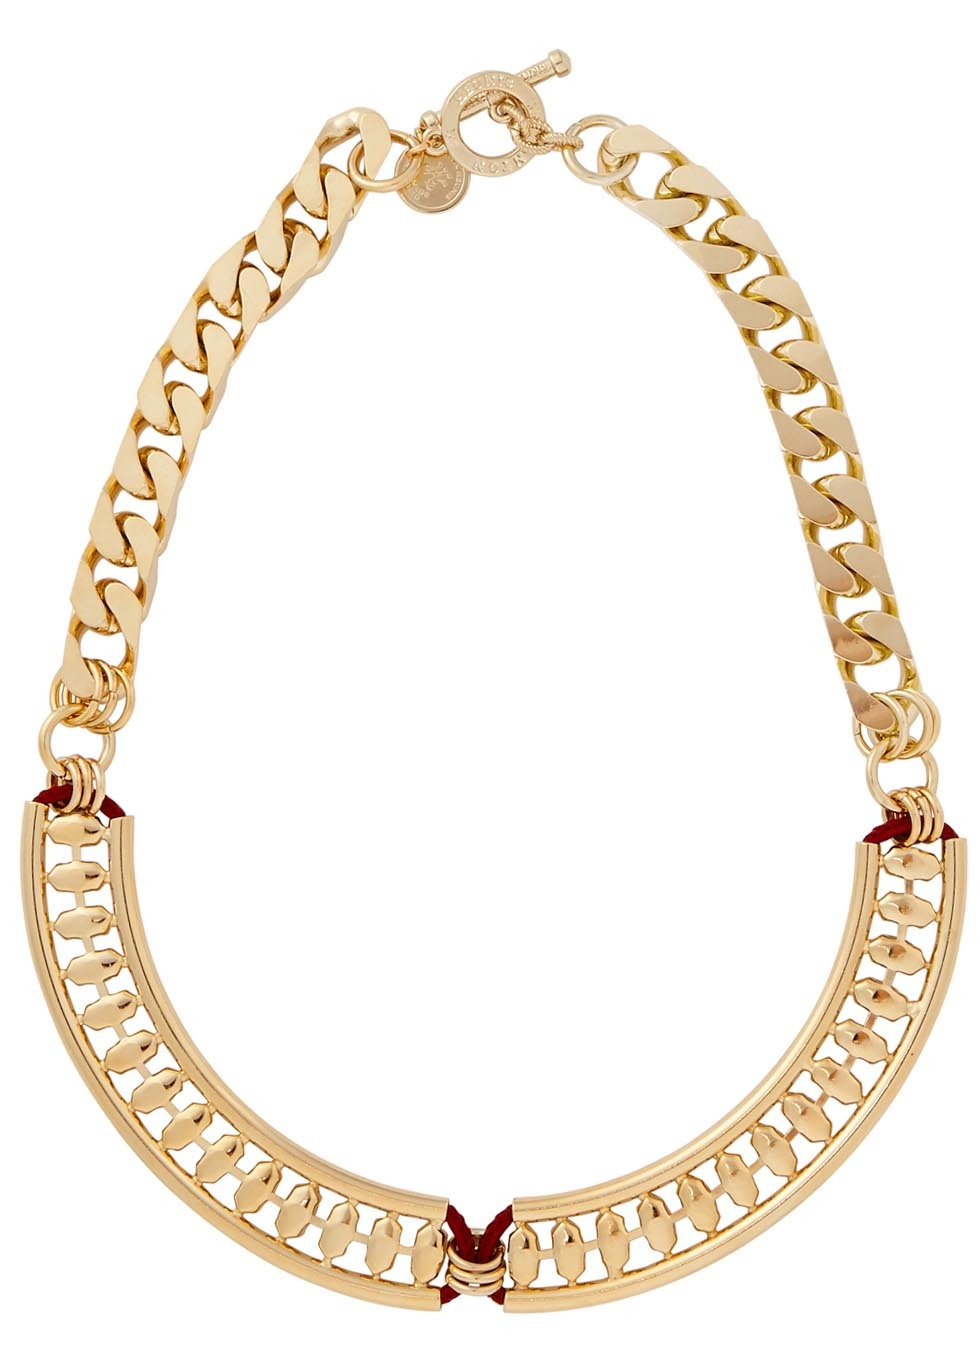 Kori Swarovski Gold Plated Necklace - predominant colour: gold; occasions: casual, evening; length: mid; size: large/oversized; material: chain/metal; finish: plain; embellishment: crystals/glass; style: bib/statement; season: s/s 2016; wardrobe: highlight